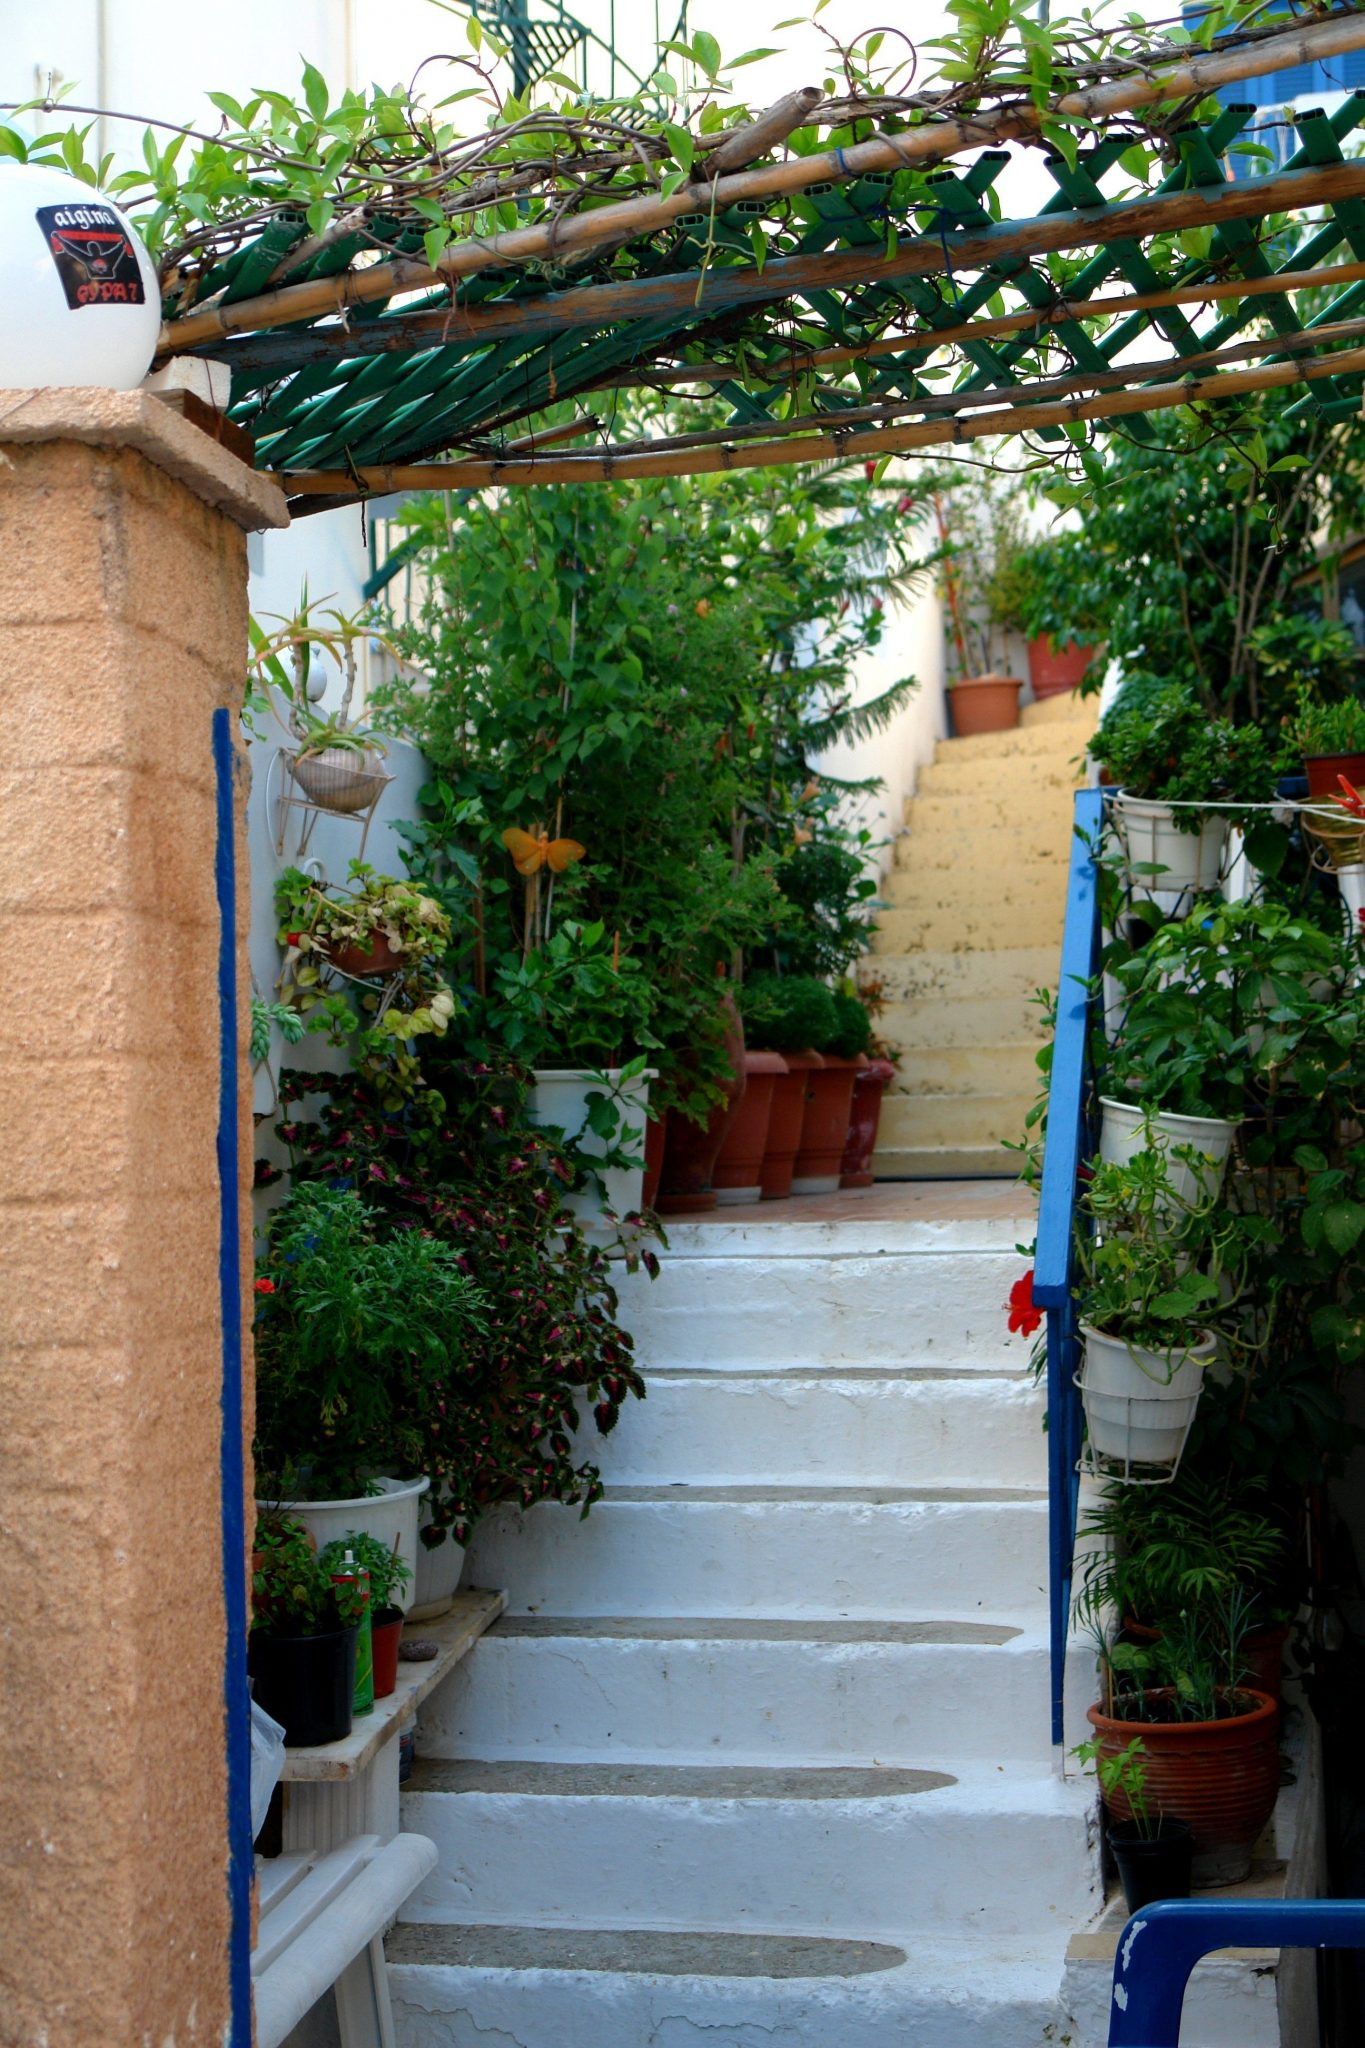 Aegina picturesque alleys